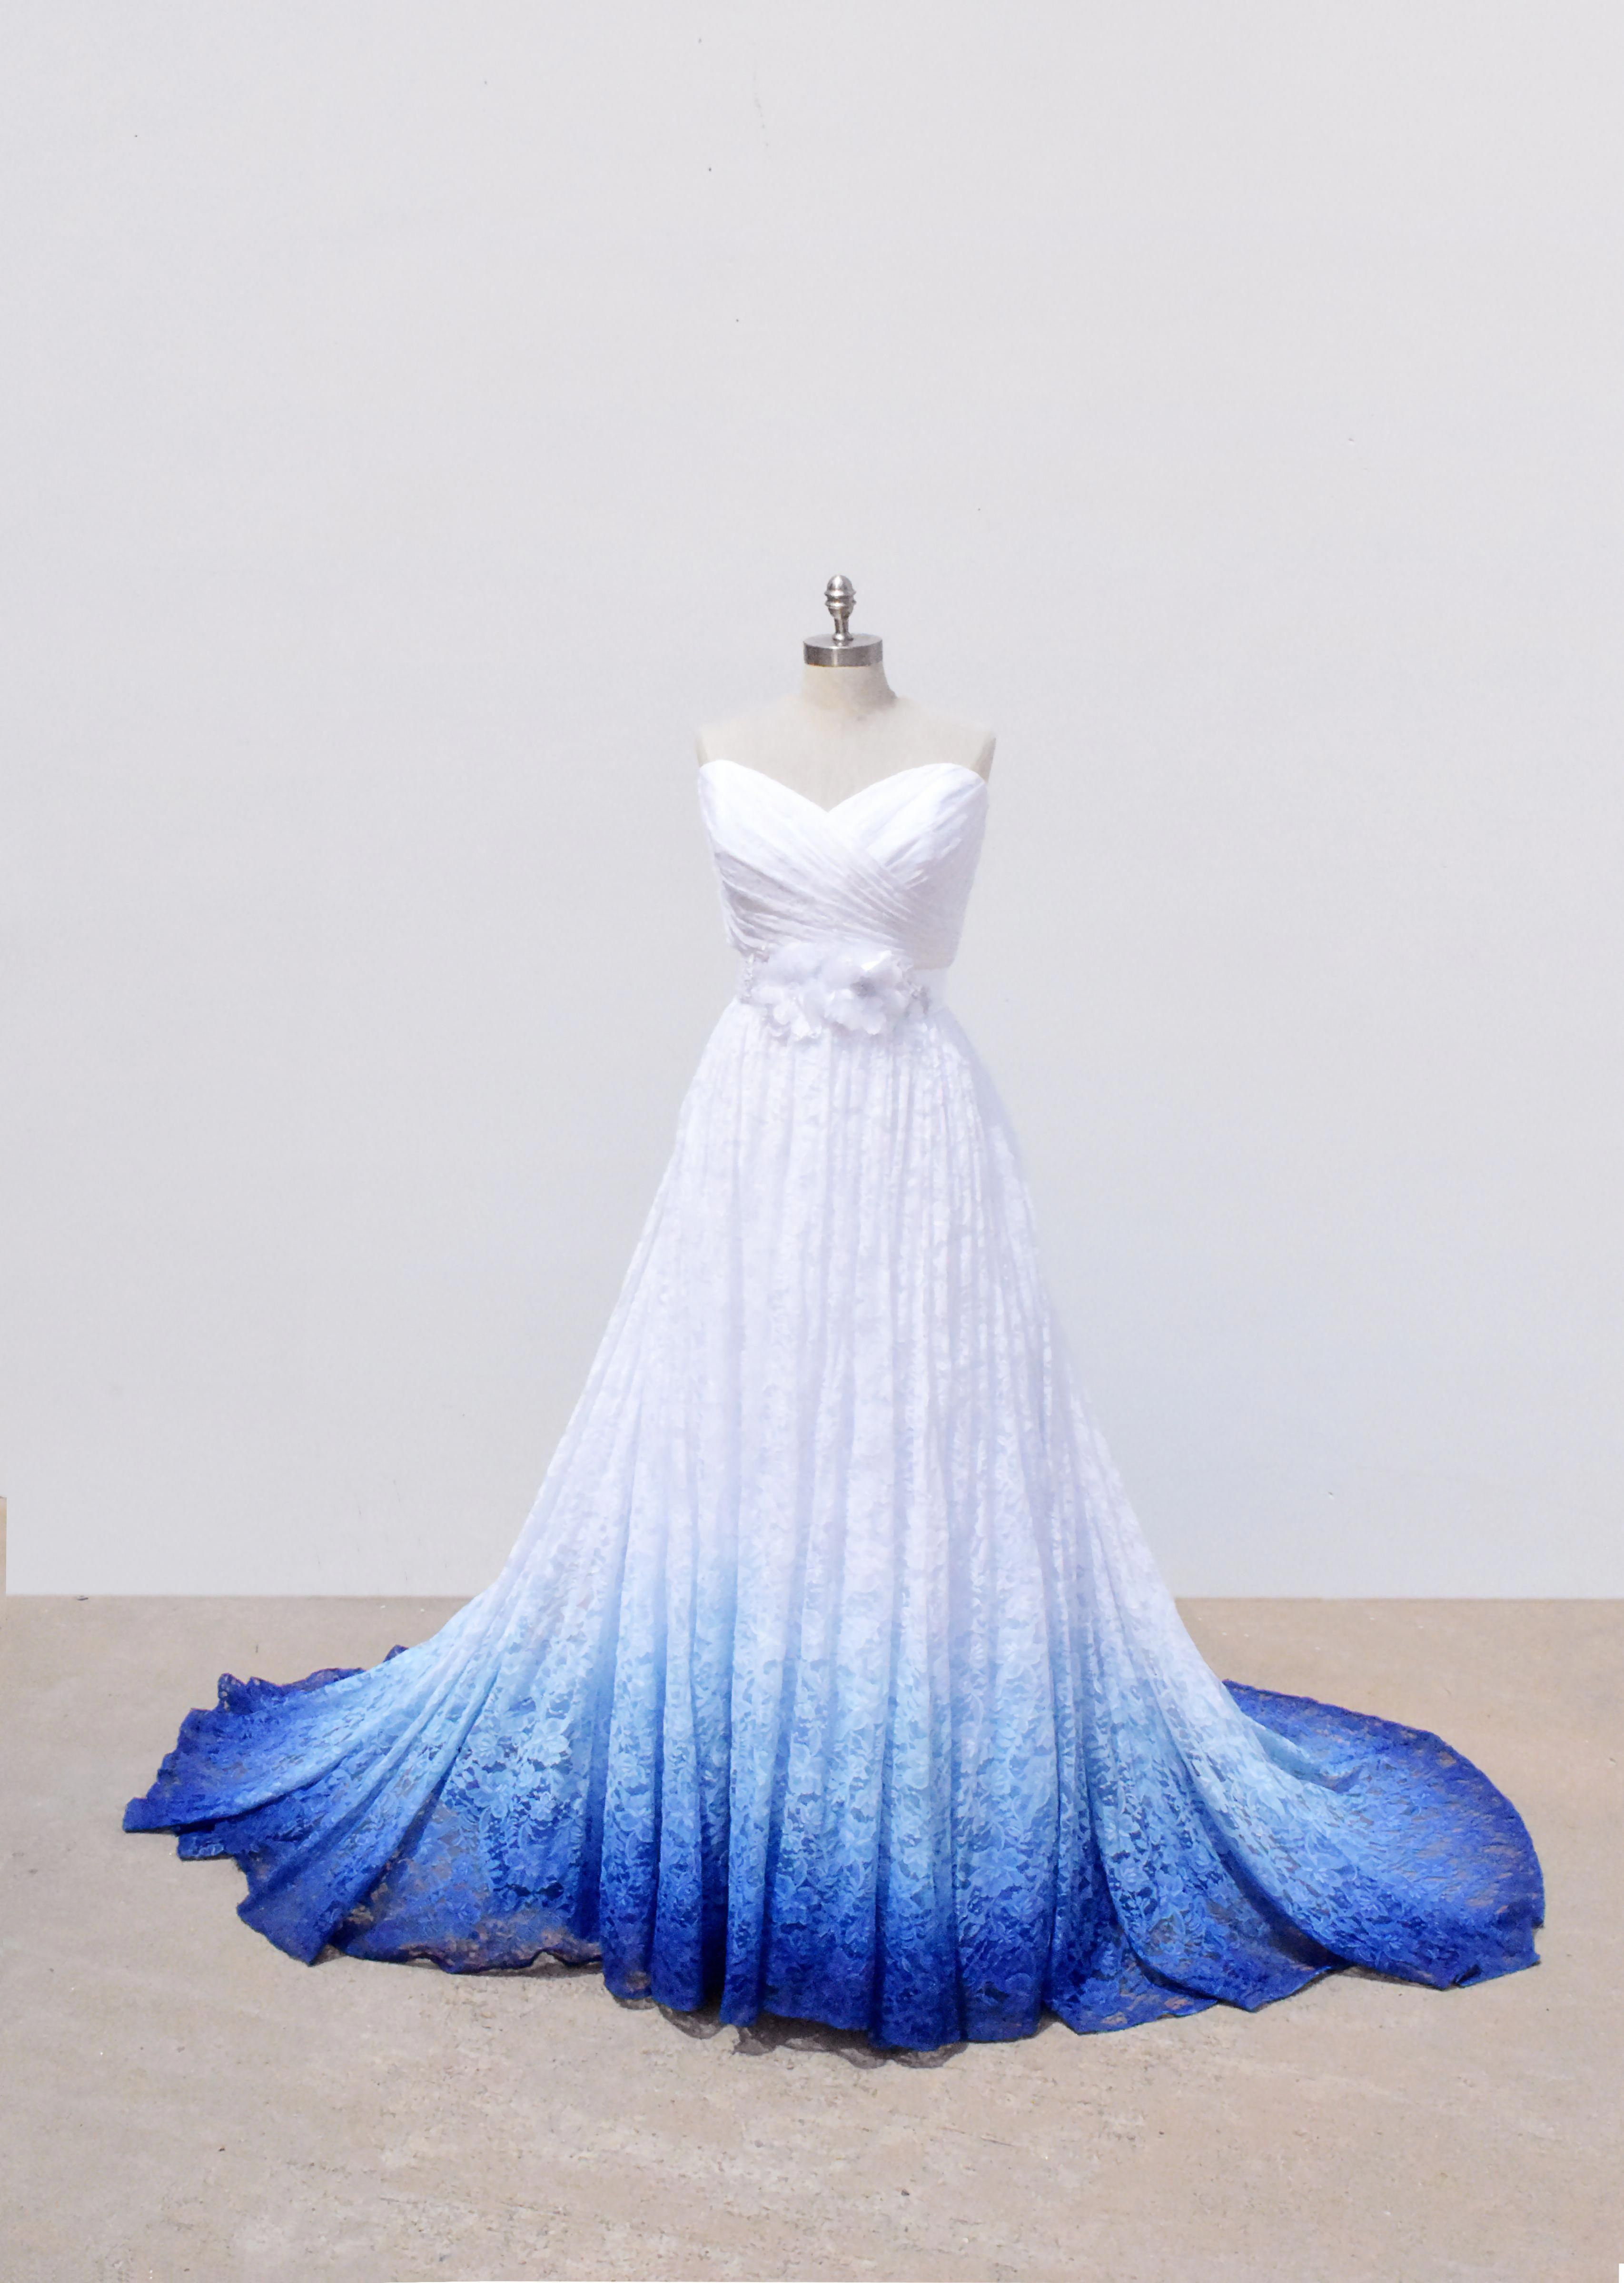 Something Blue Lace Bridal Gown With Color Light Blue Wedding Dip Dye Ombre Dress Wedd Dye Wedding Dress Blue Lace Wedding Dress Dip Dye Wedding Dress [ 4797 x 3412 Pixel ]